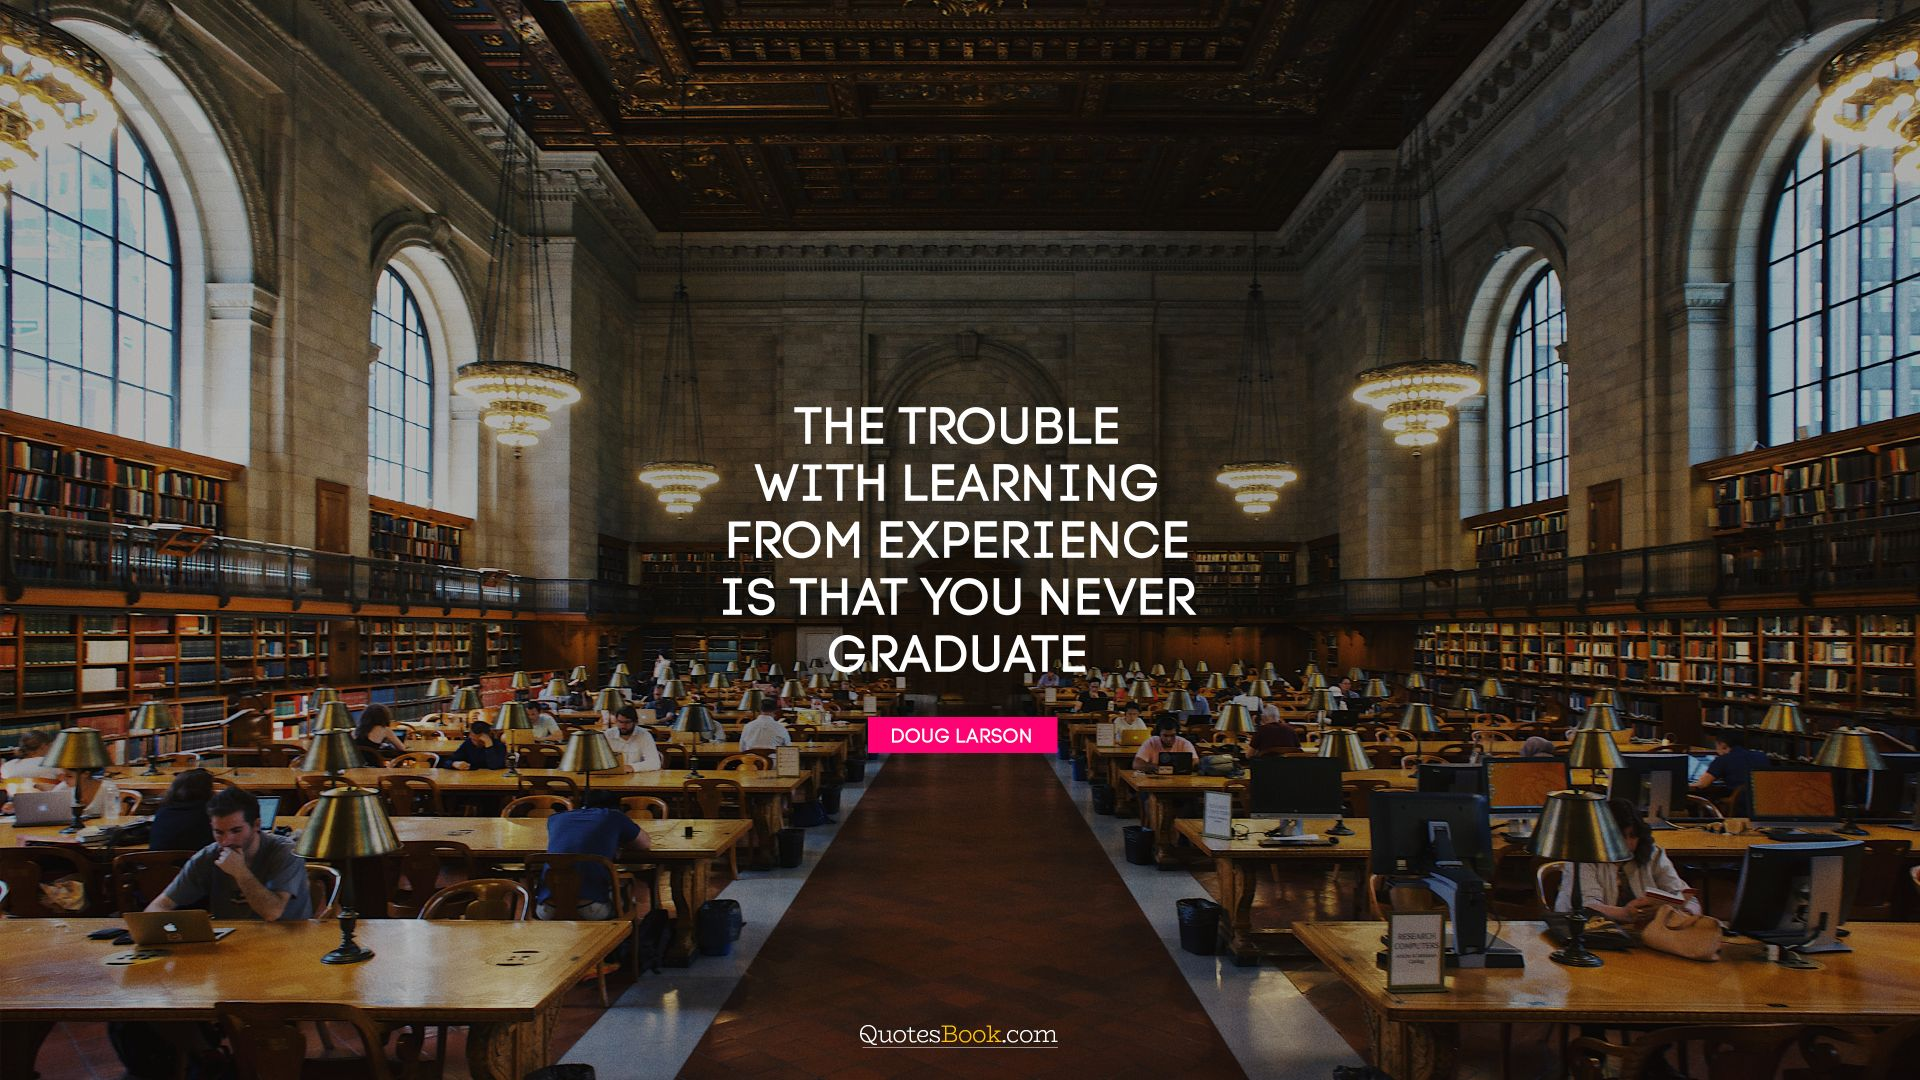 The trouble with learning from experience is that you never graduate. - Quote by Doug Larson